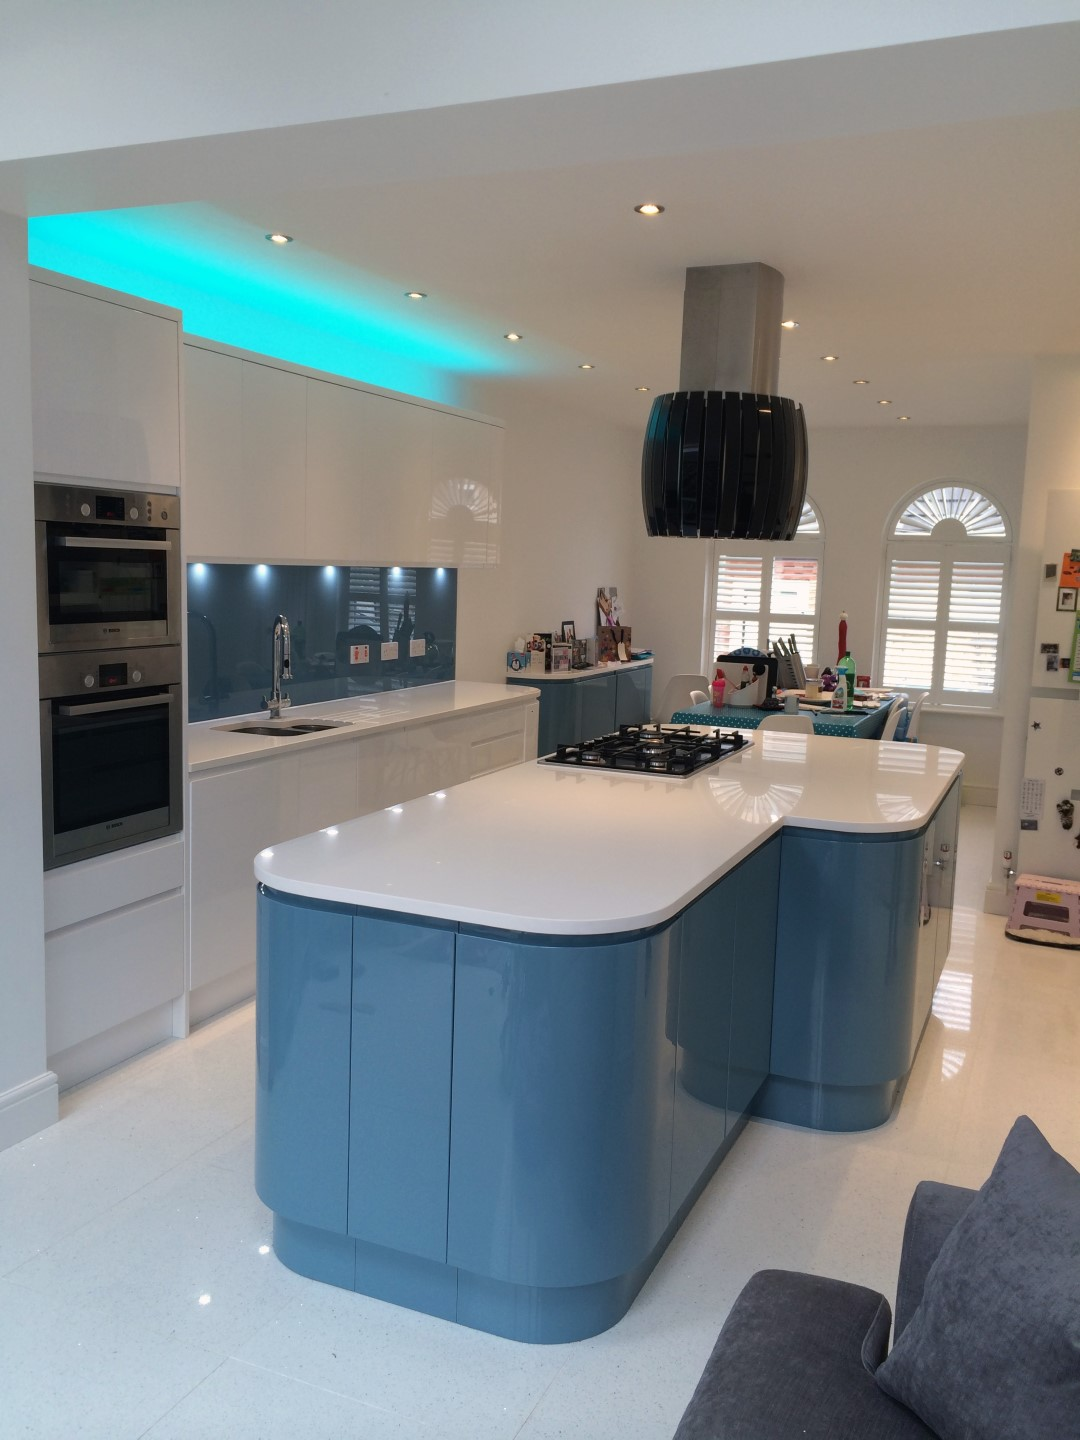 Handleless White  Blue German Kitchen  Bishops Stortford  Blax Kitchens Ltd